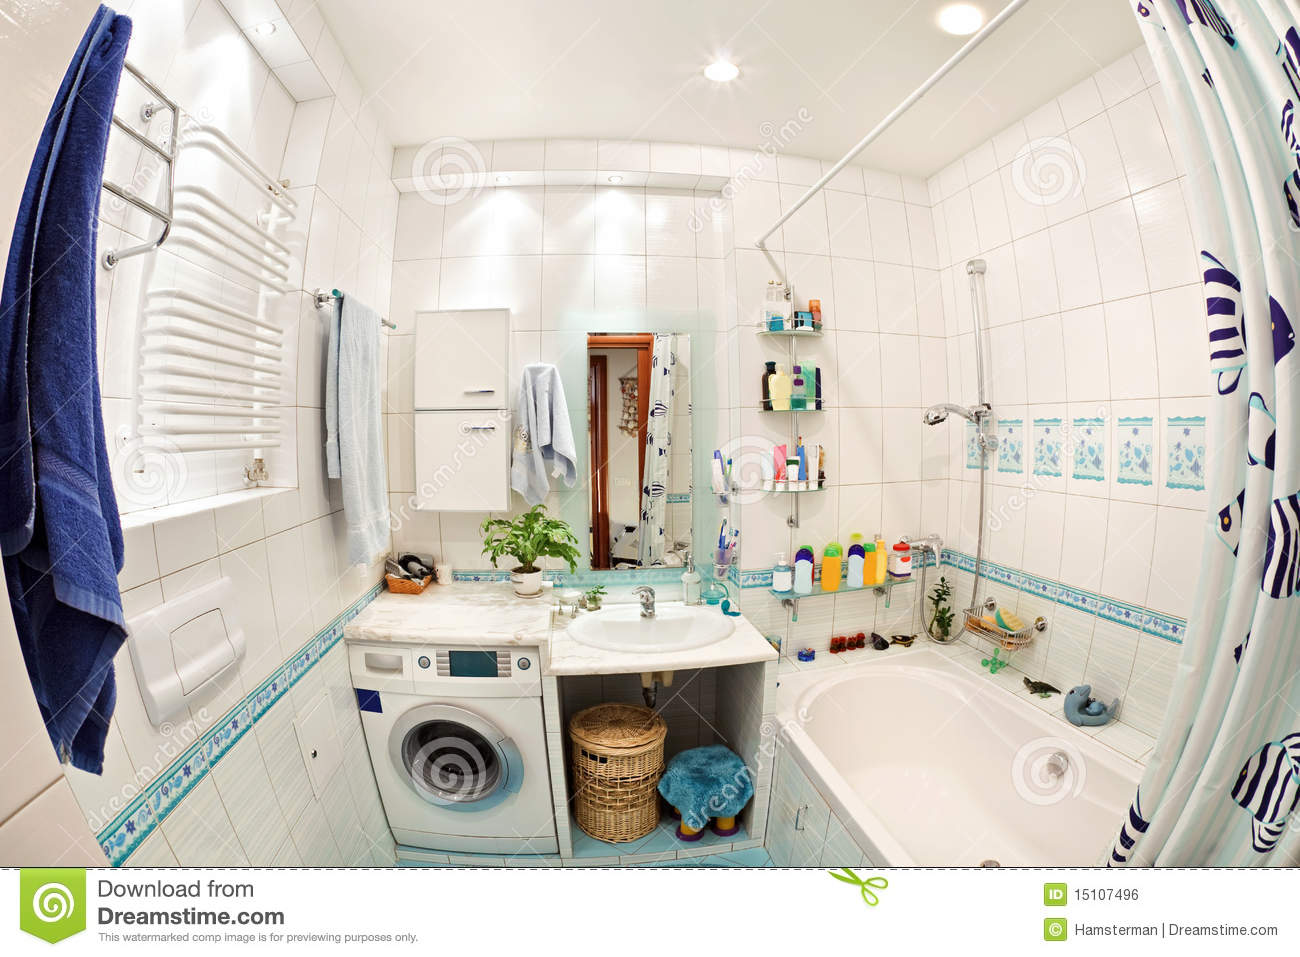 Baños Azules Pequenos:Best Wide Angle Lens for Interior Shots